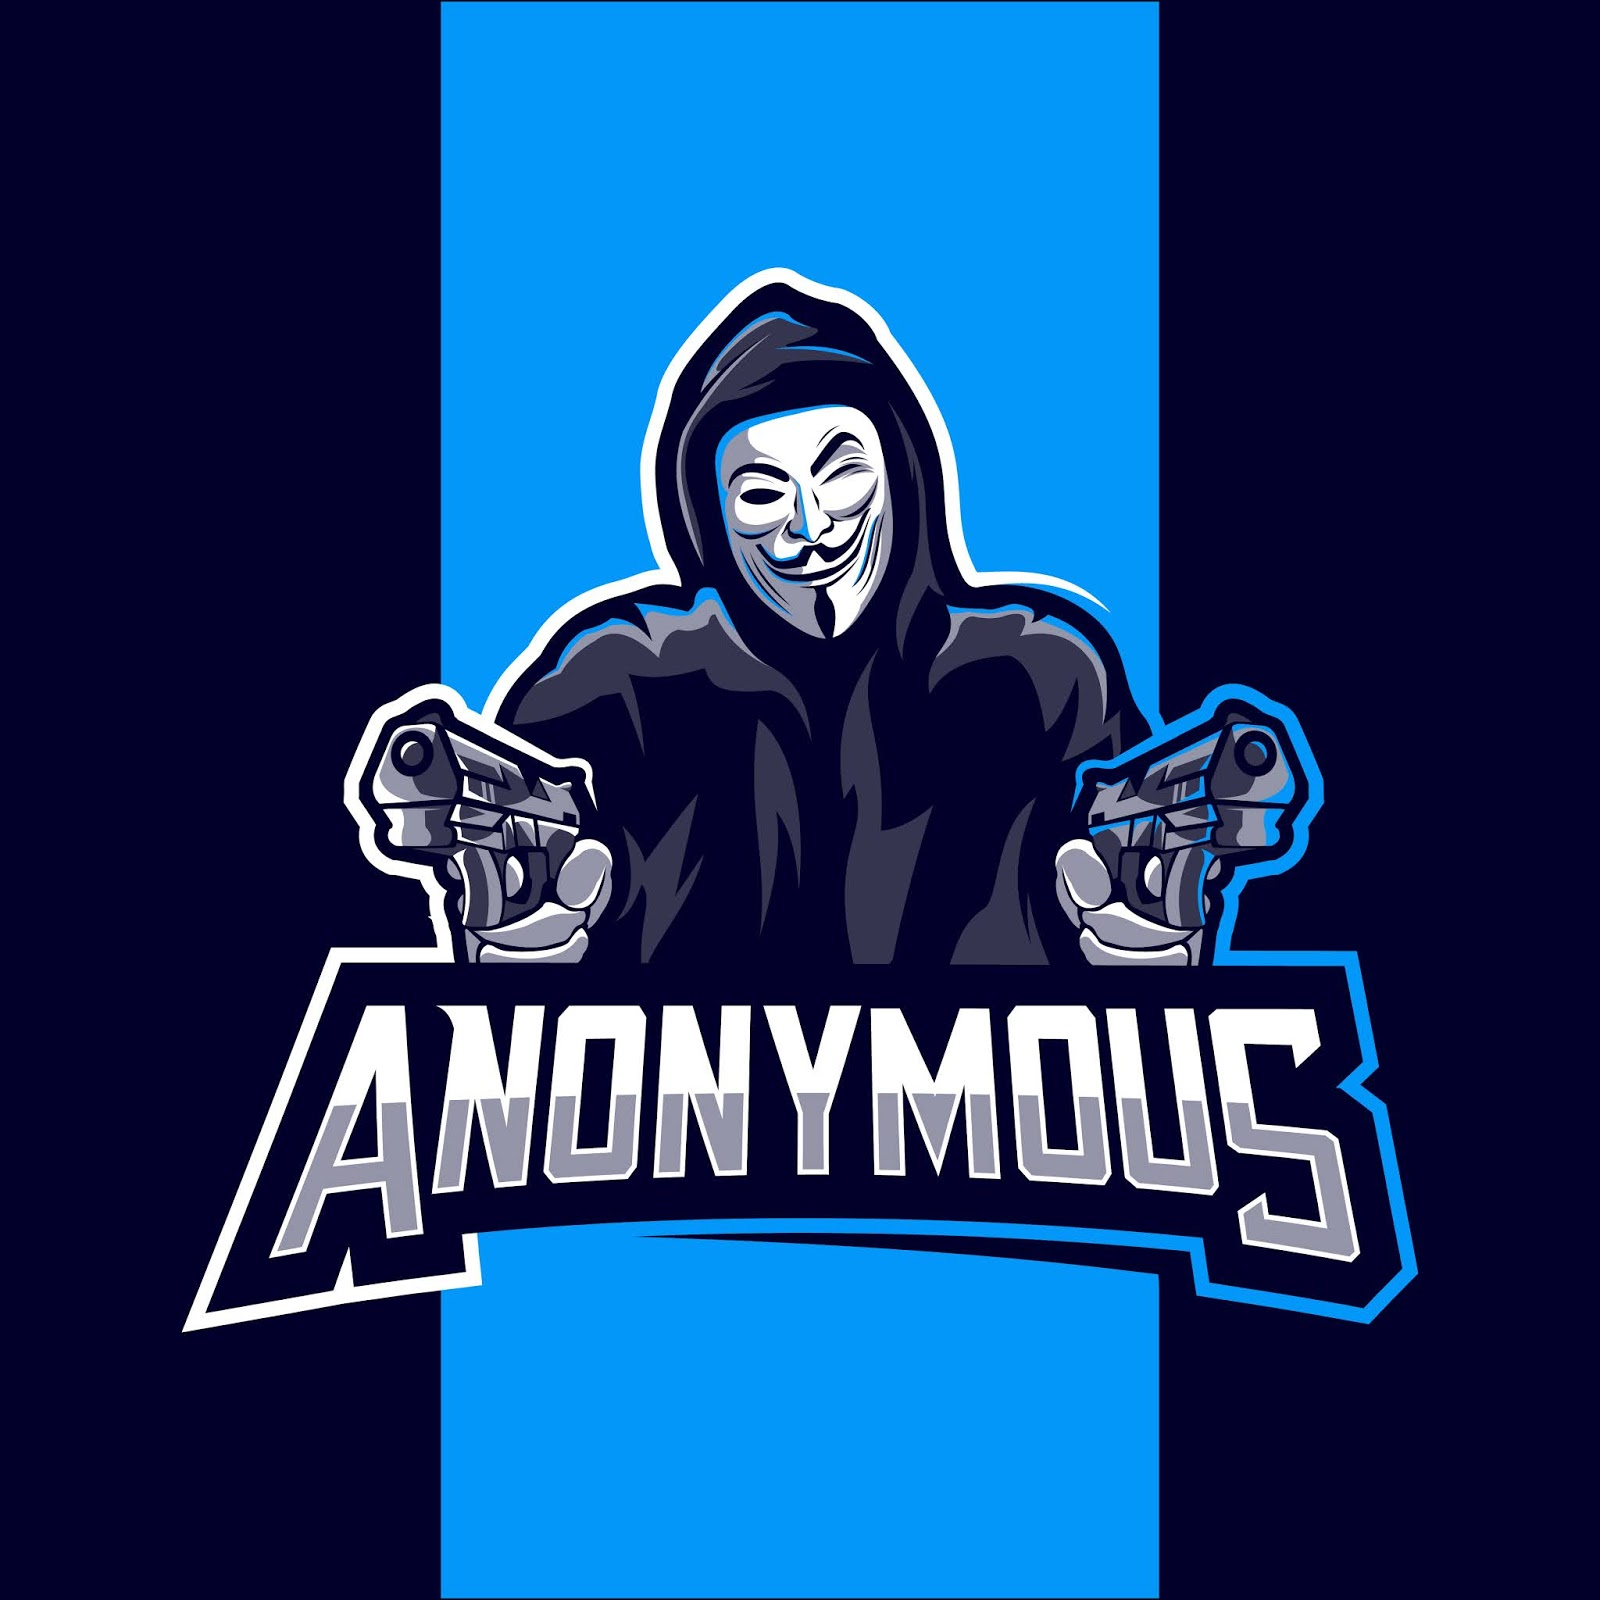 Anonymous Mascot Logo Esport Design Free Download Vector CDR, AI, EPS and PNG Formats